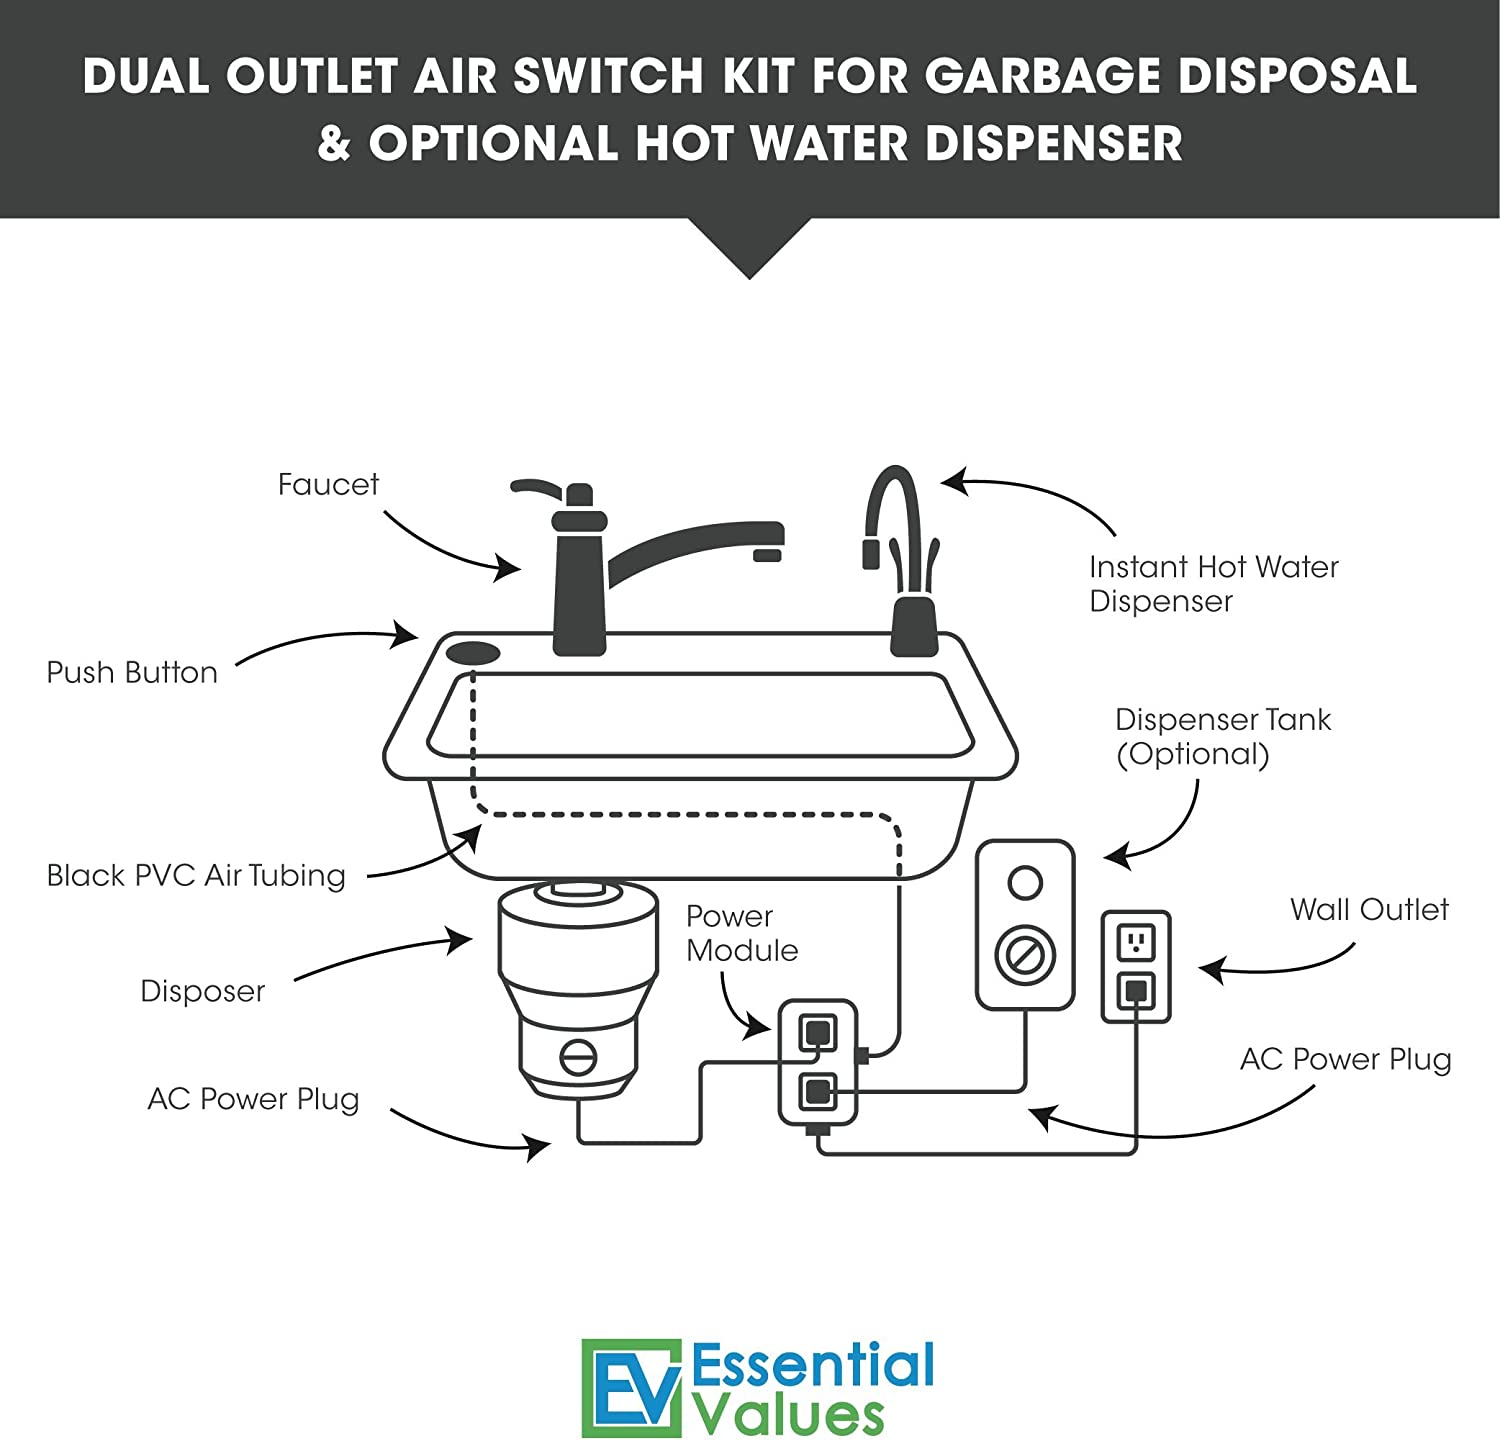 Wiring A Garbage Disposal Switch Diagram from images-na.ssl-images-amazon.com